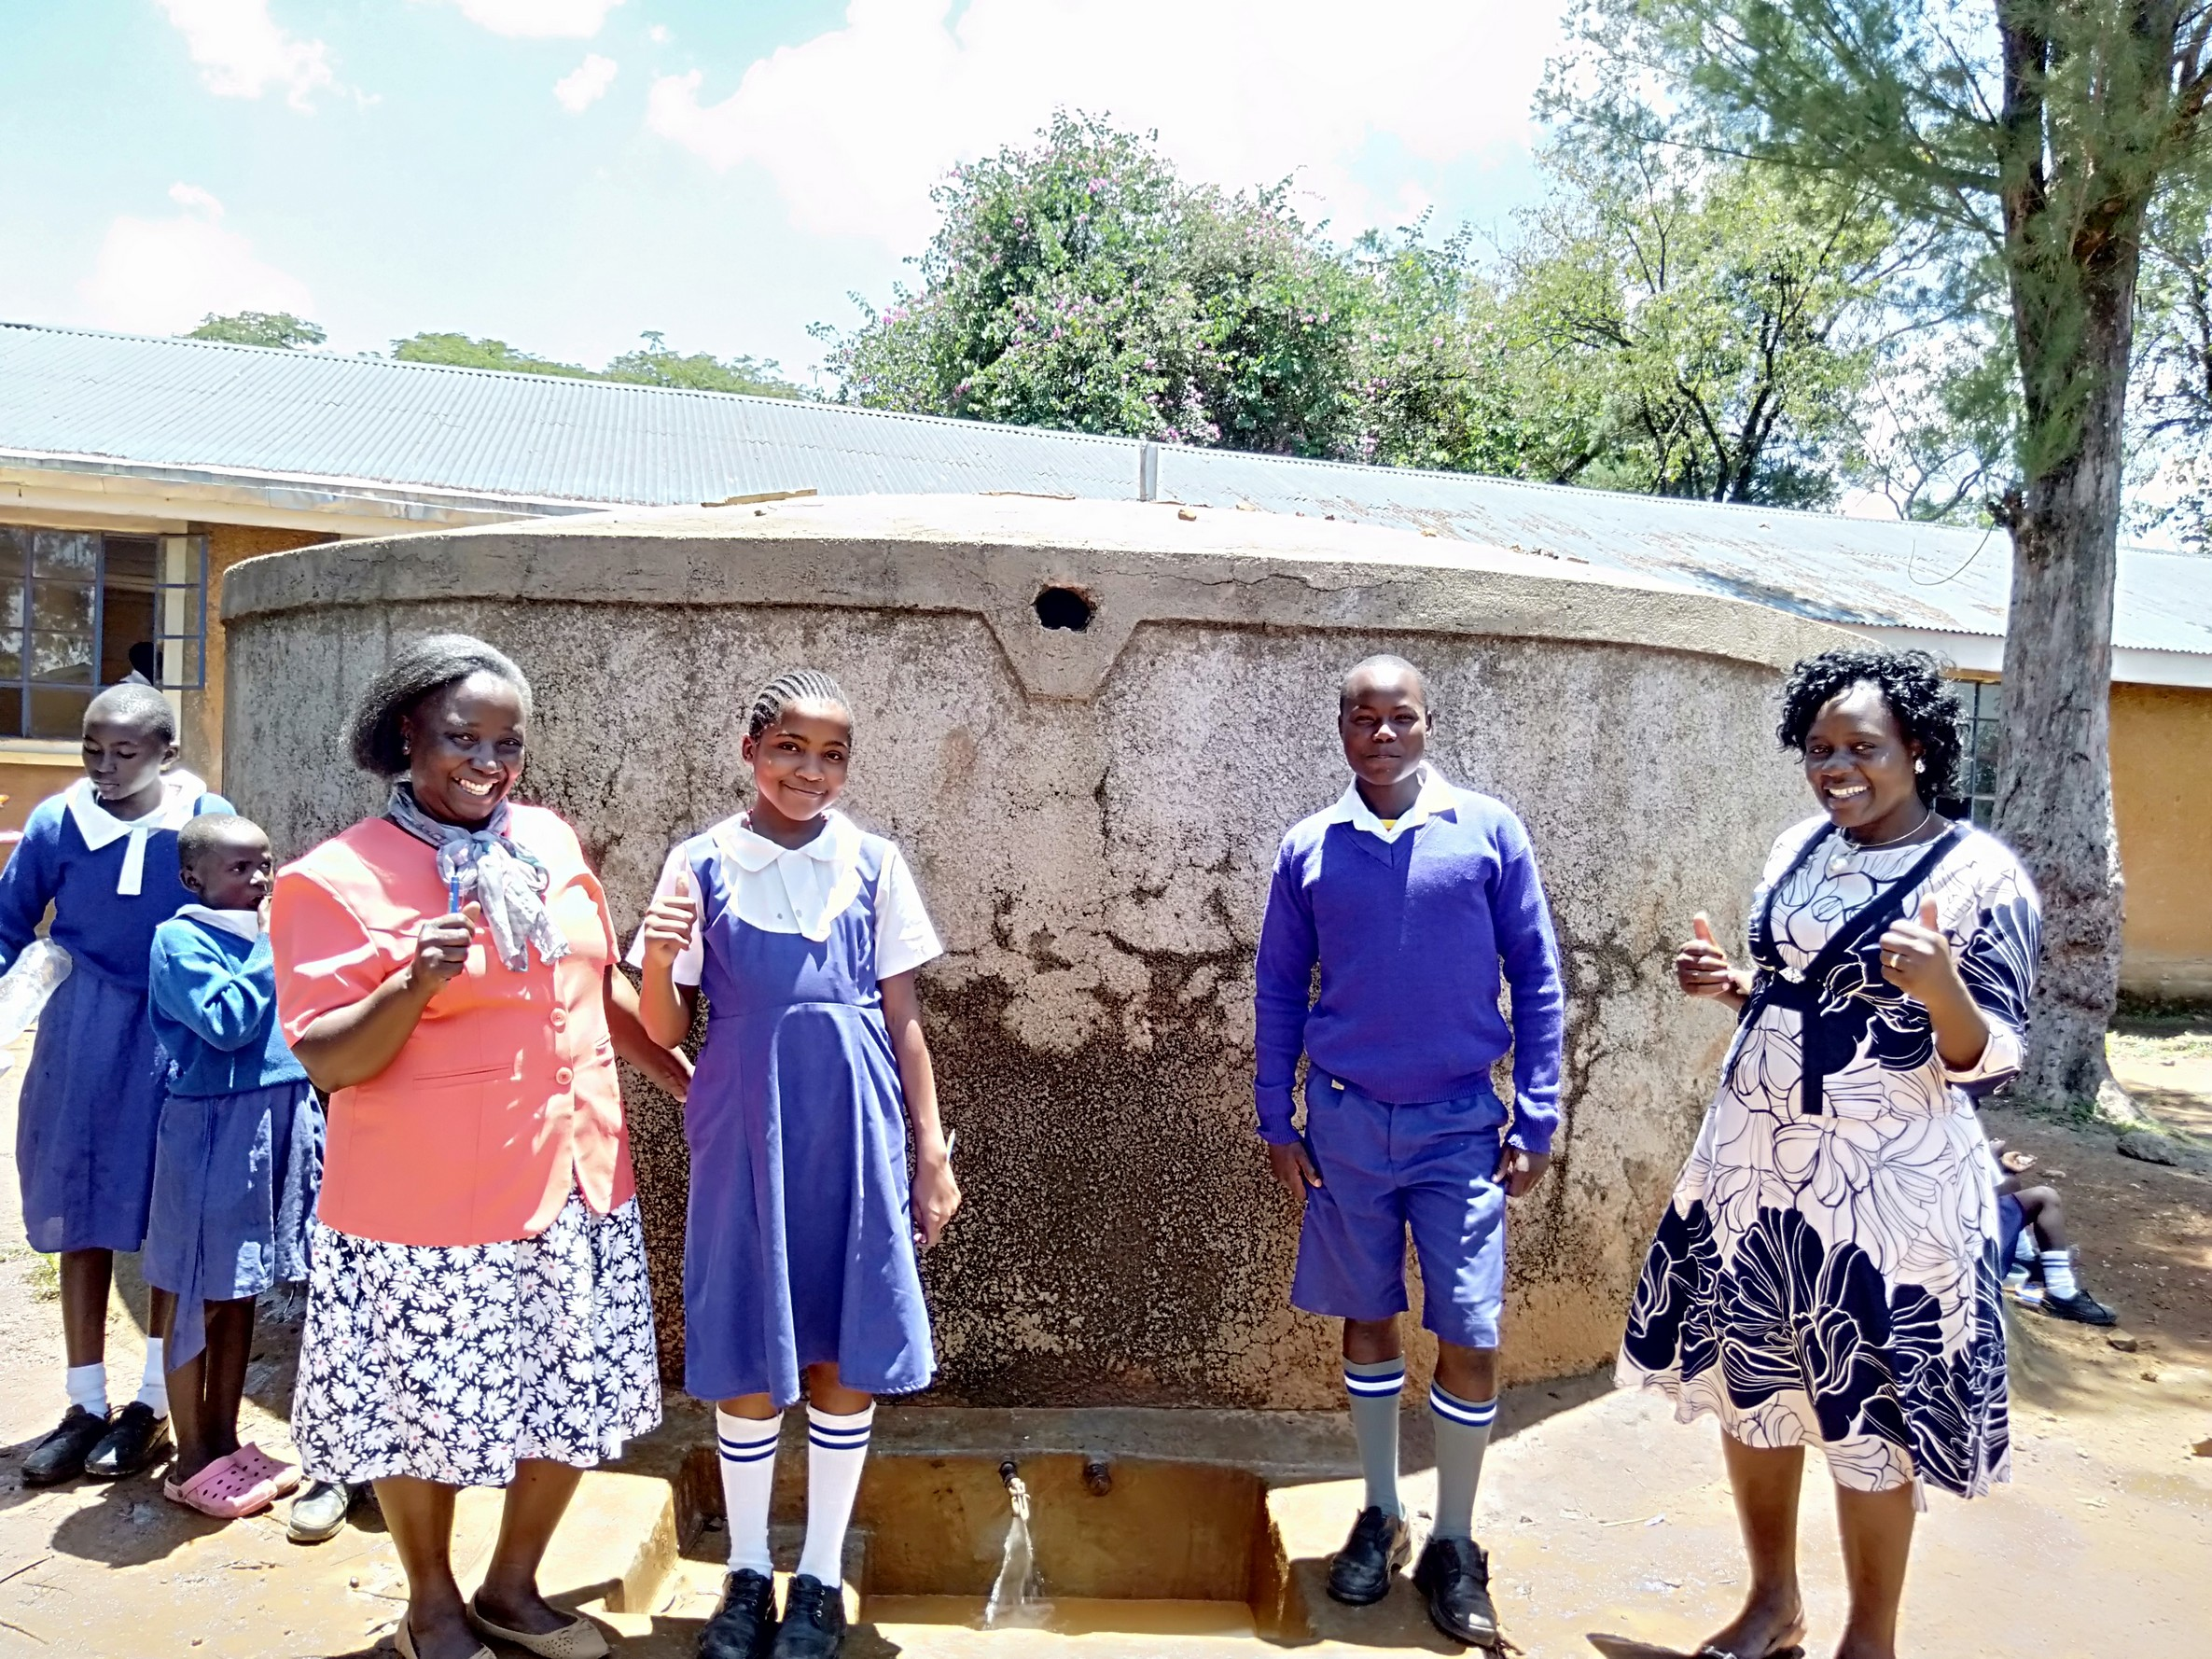 The Water Project : 1-kenya18007-senior-teacher-pamela-olwanda-pupils-stephanie-and-juma-and-wash-staff-karen-maruti